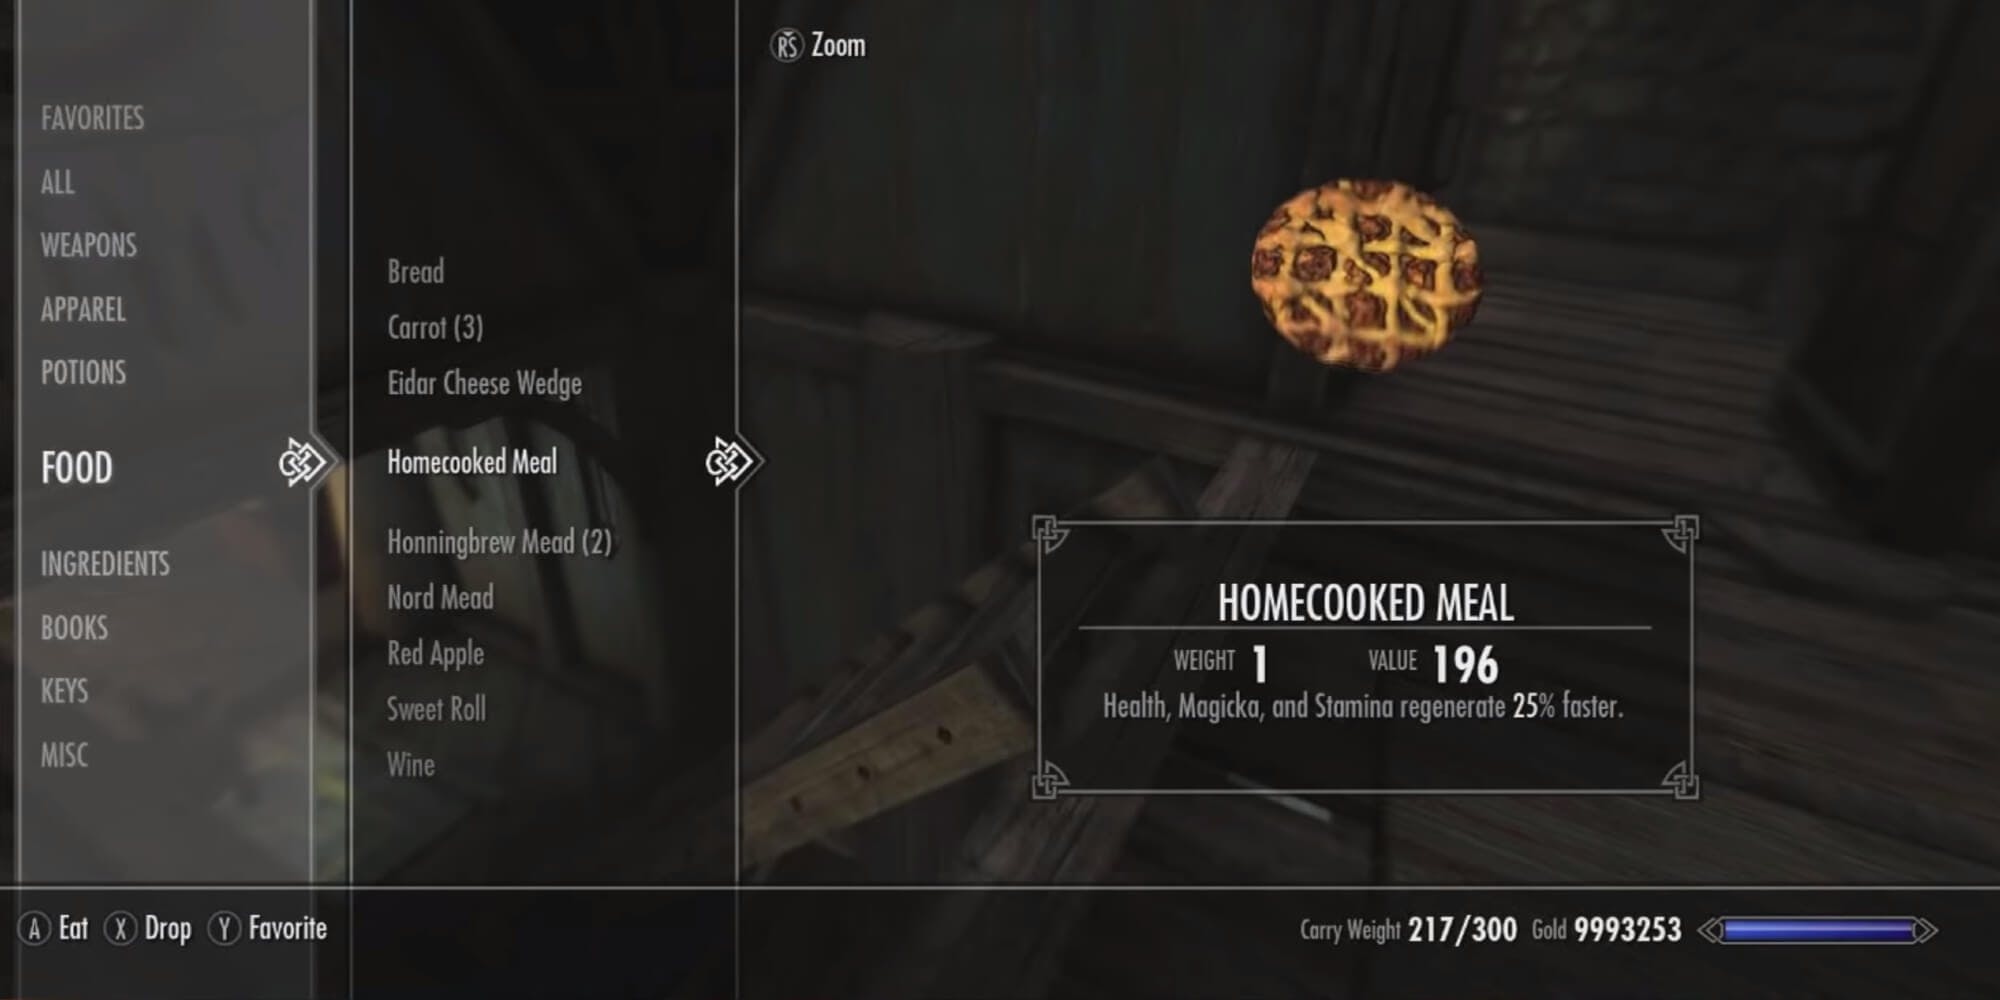 Skyrim - Homecooked meal